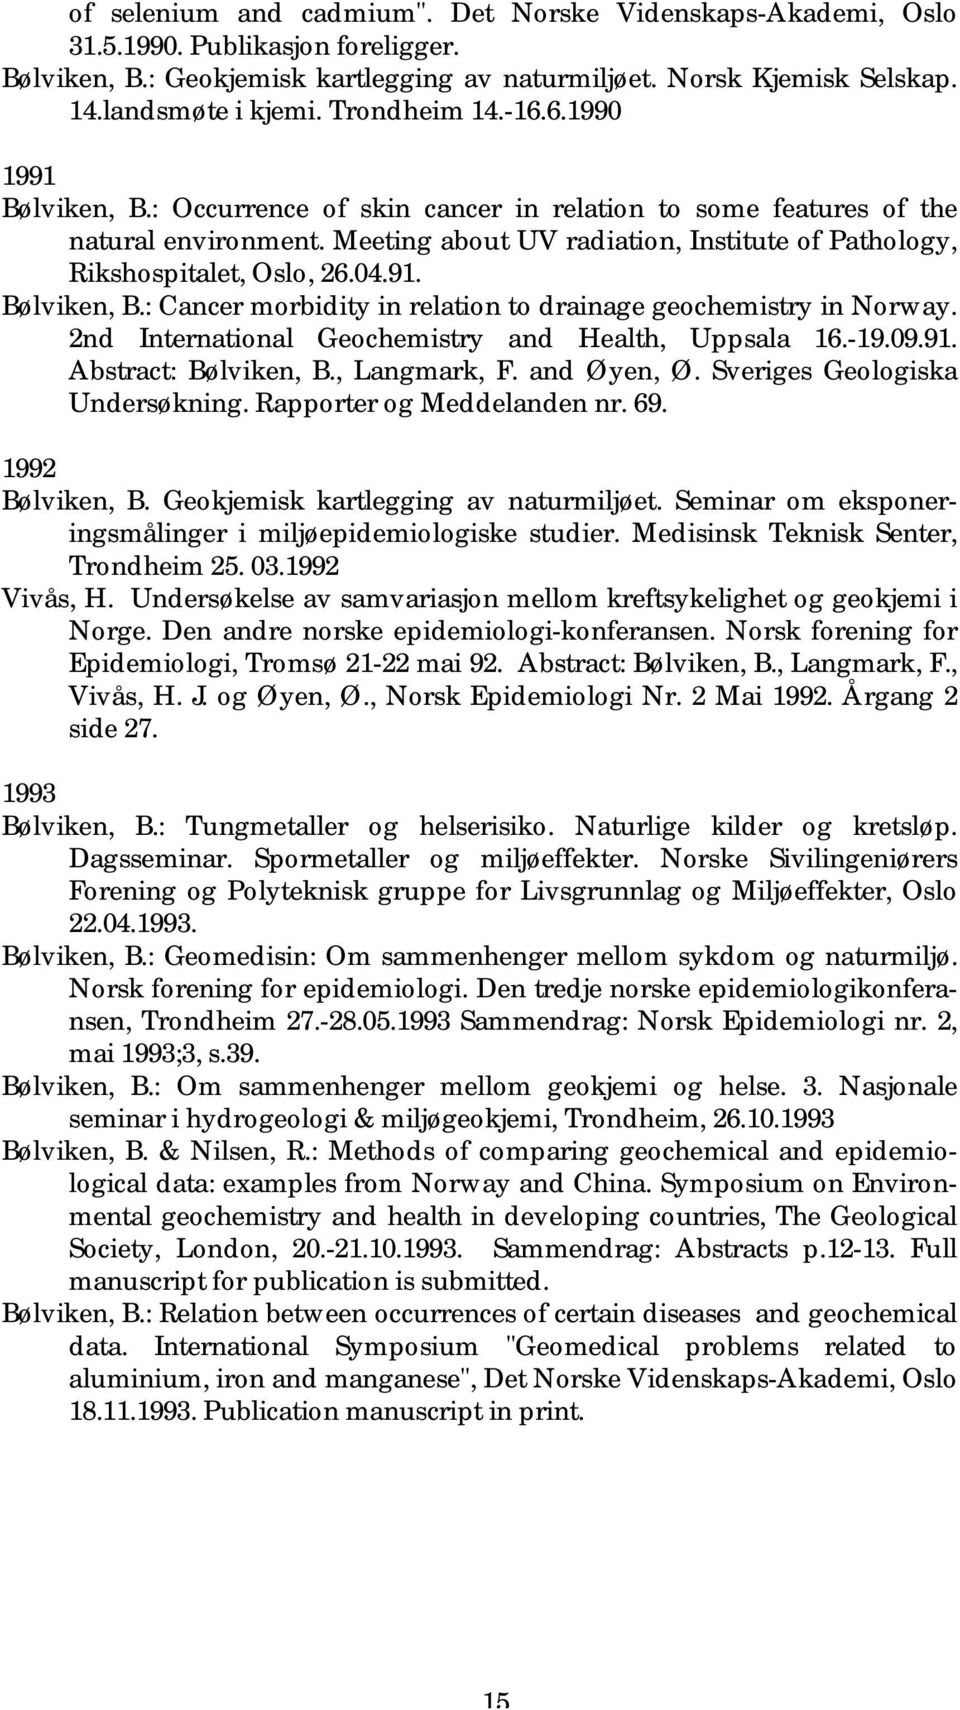 Meeting about UV radiation, Institute of Pathology, Rikshospitalet, Oslo, 26.04.91. Bølviken, B.: Cancer morbidity in relation to drainage geochemistry in Norway.